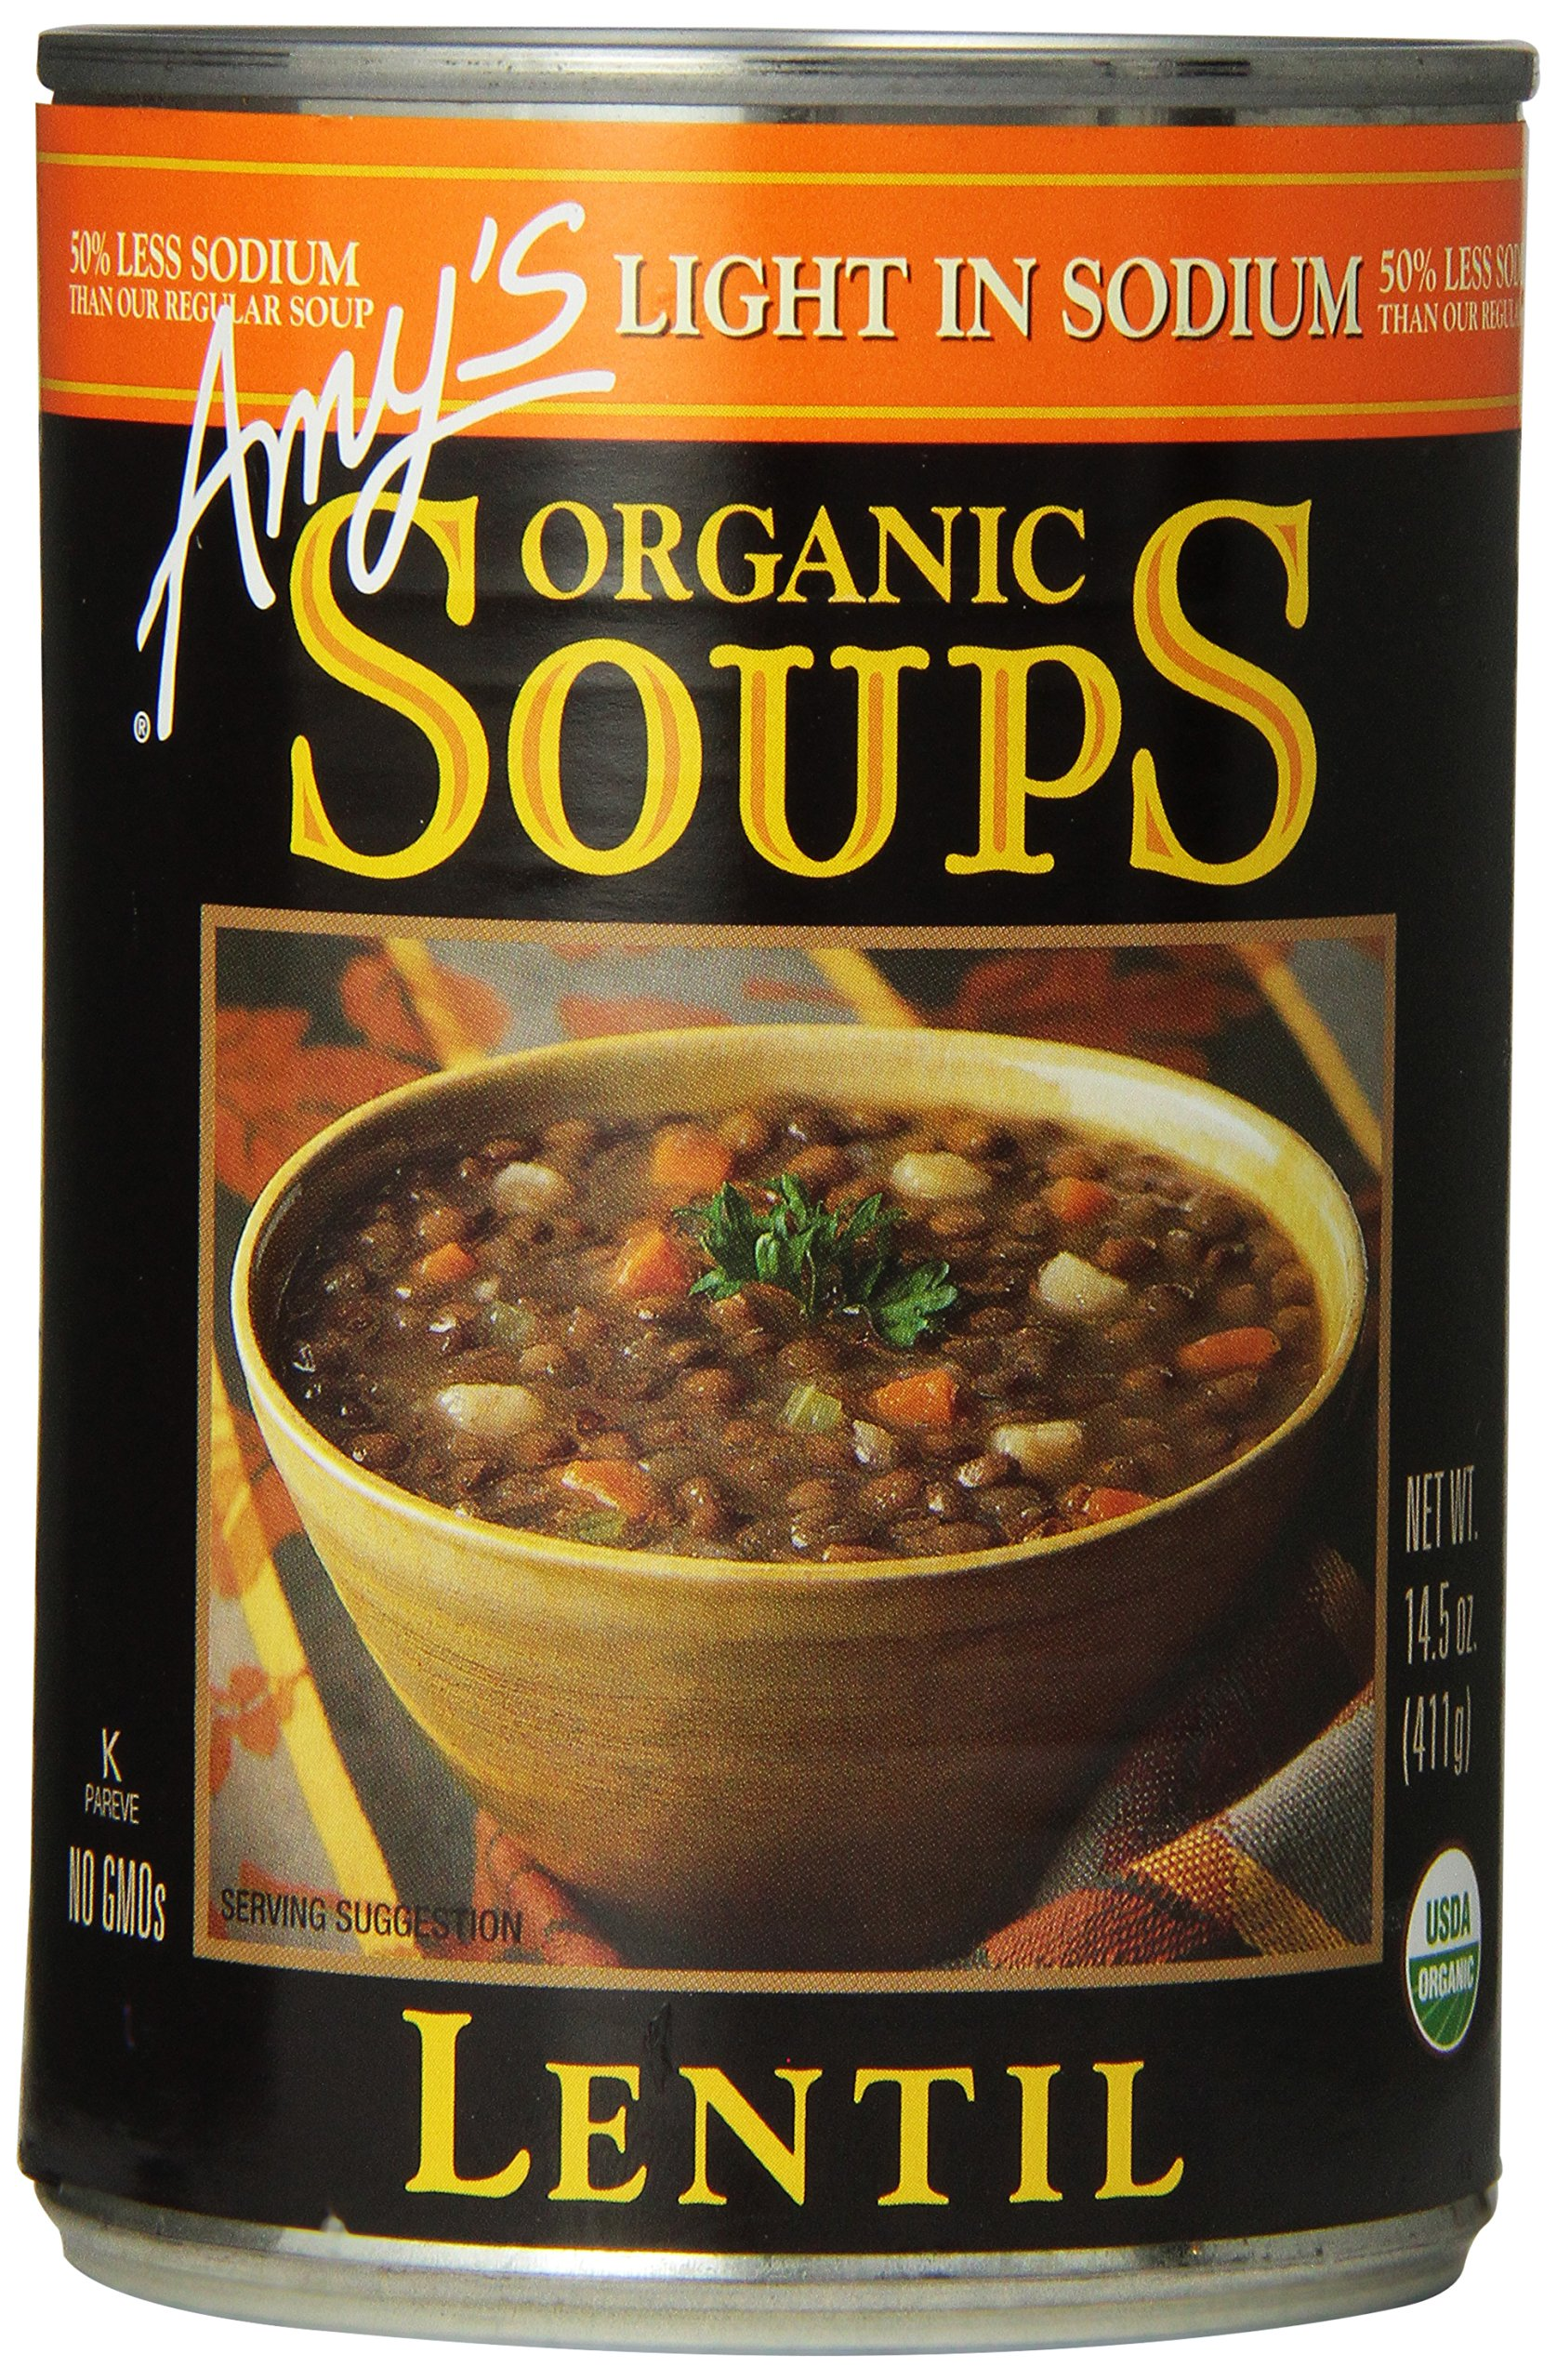 Amy's Organic Soups, Light in Sodium Lentil, 14.5 Ounce (Pack of 12) by Amy's